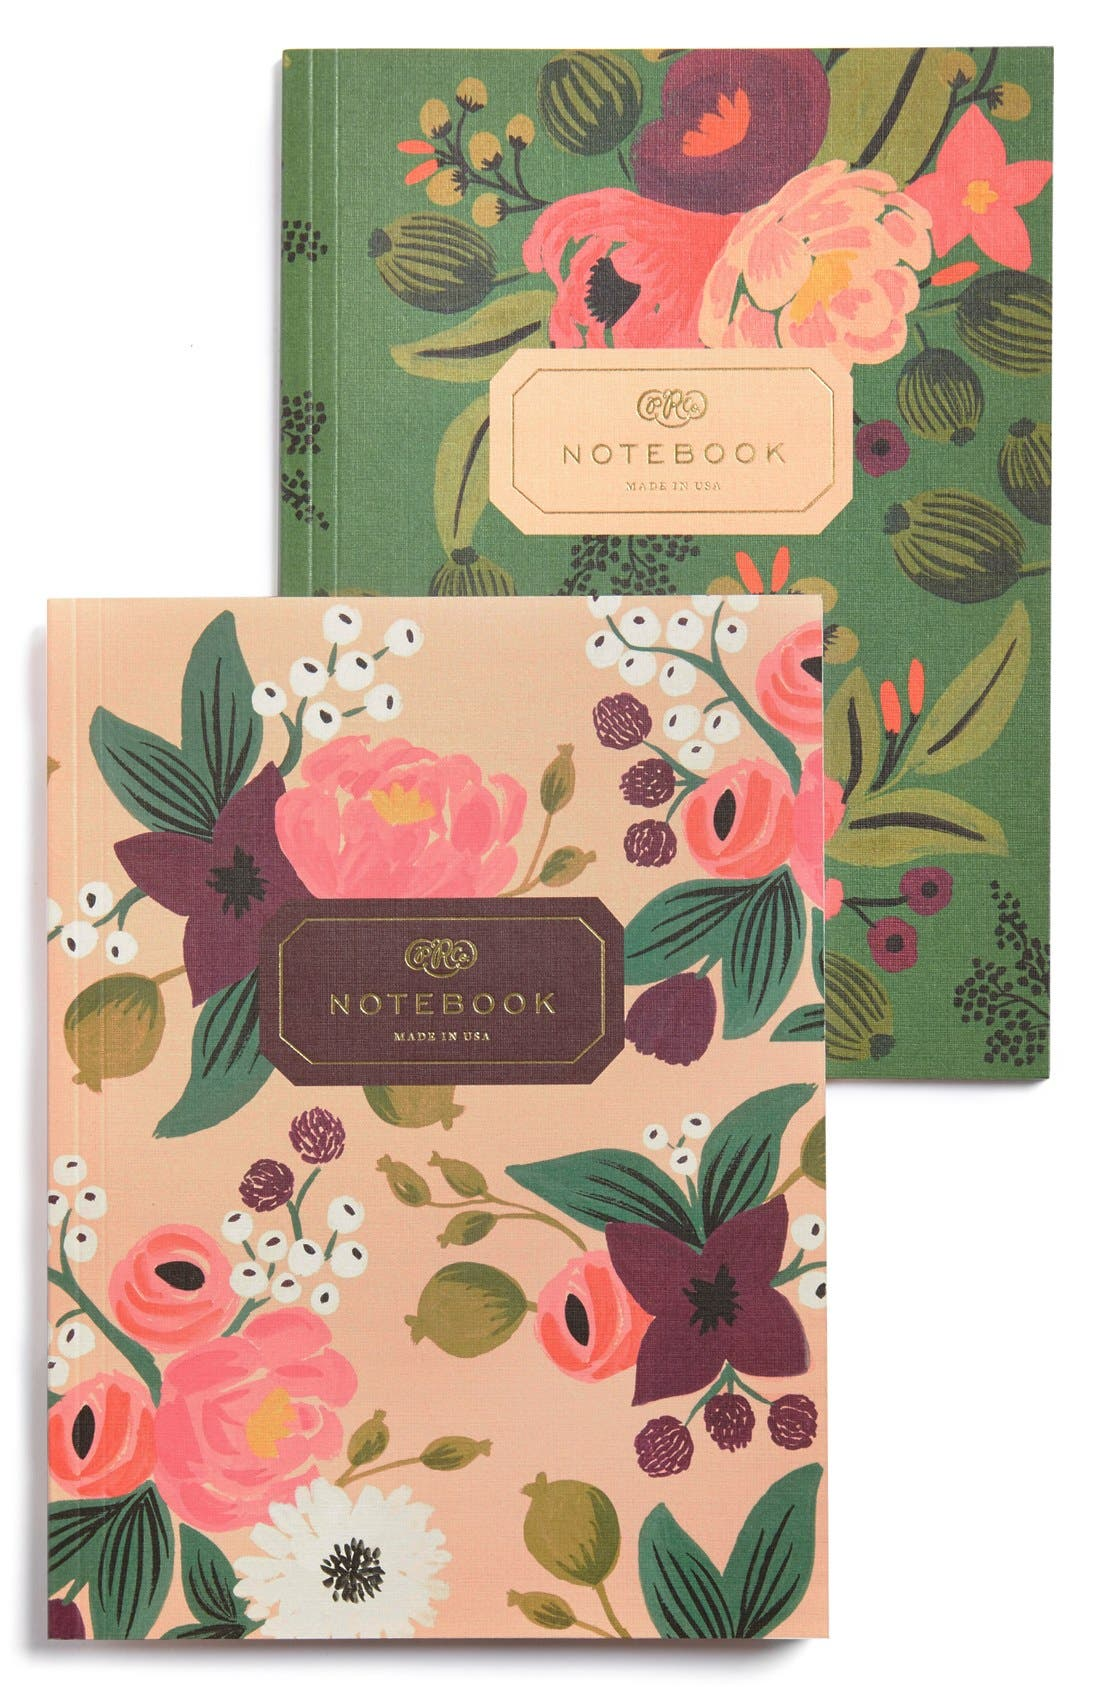 Alternate Image 1 Selected - Rifle Paper Co. 'Vintage Blossoms' Notebooks (Set of 2)